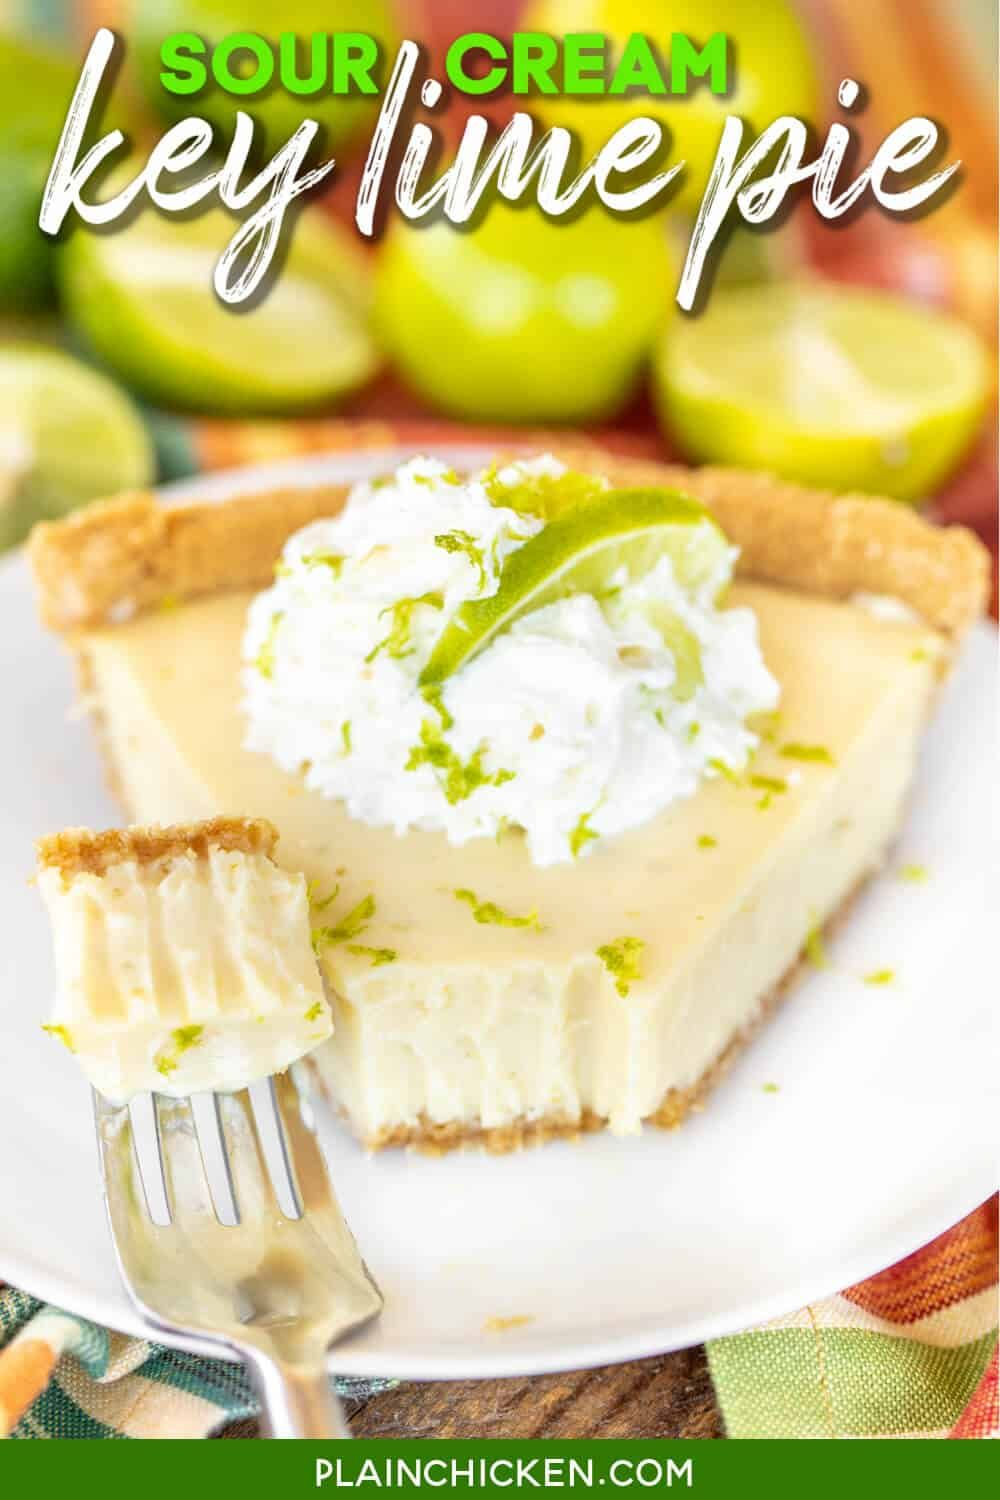 Sour Cream Key Lime Pie To Die For Delicious So Simple And It Tastes Amazing We Made Two Of These Pies In One In 2020 Lime Pie Recipe Keylime Pie Recipe Lime